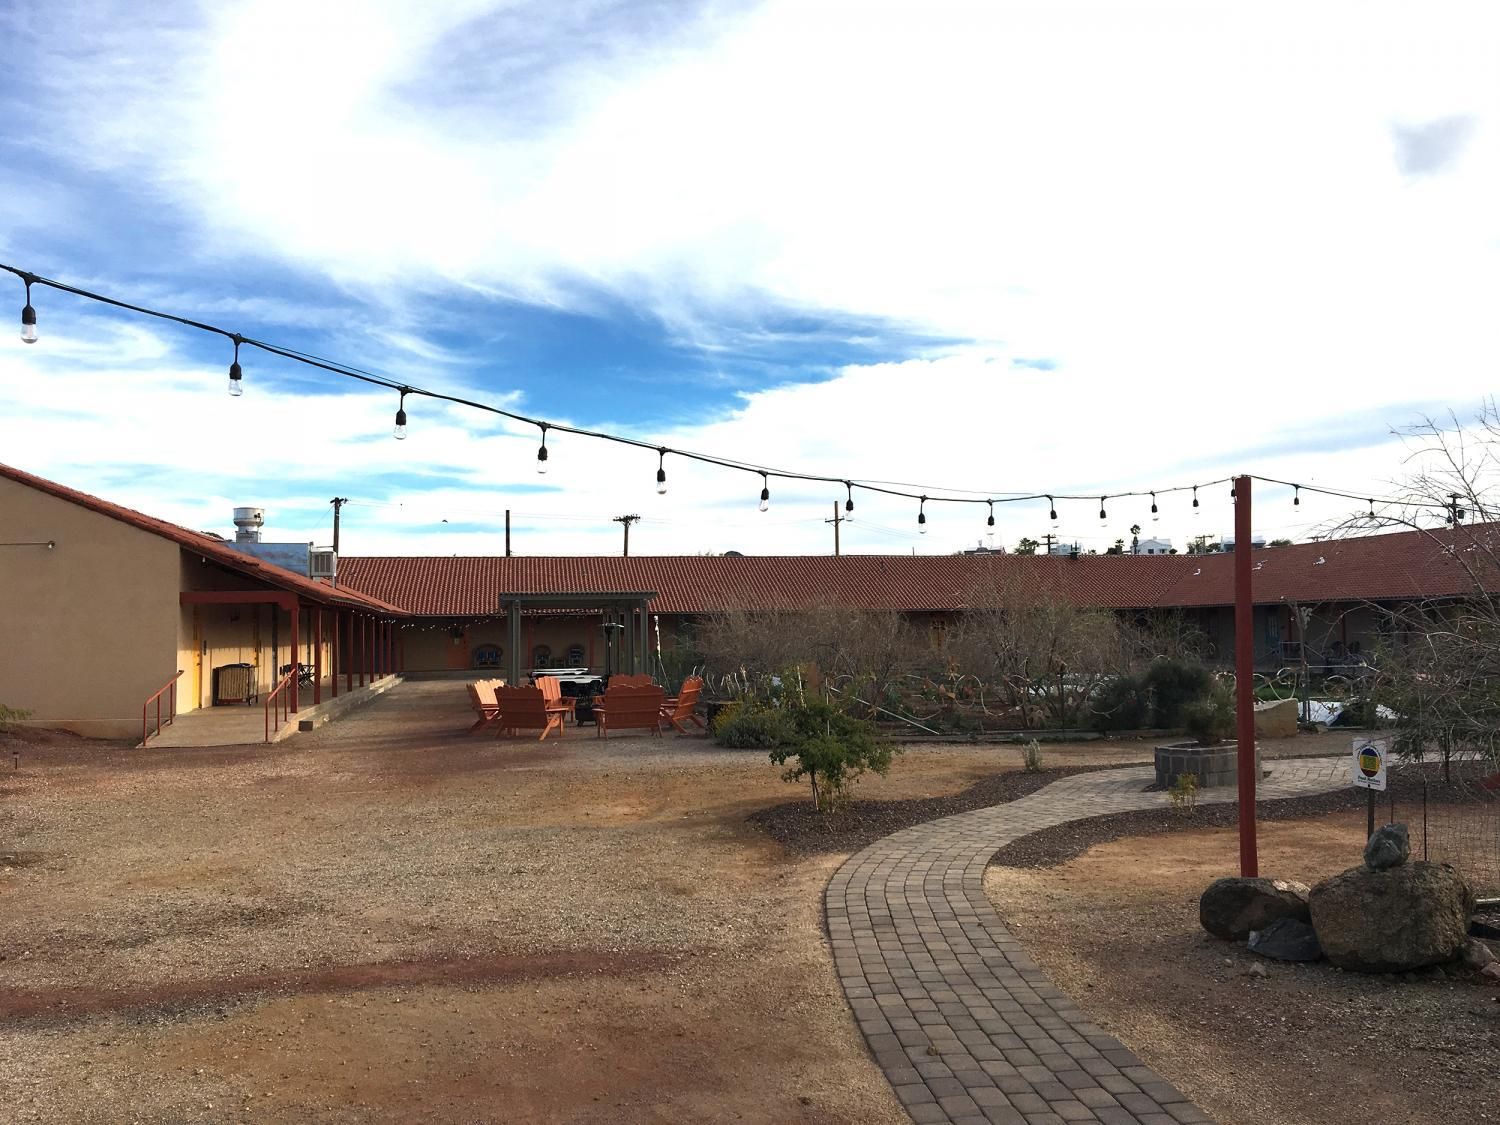 Curley School in Ajo